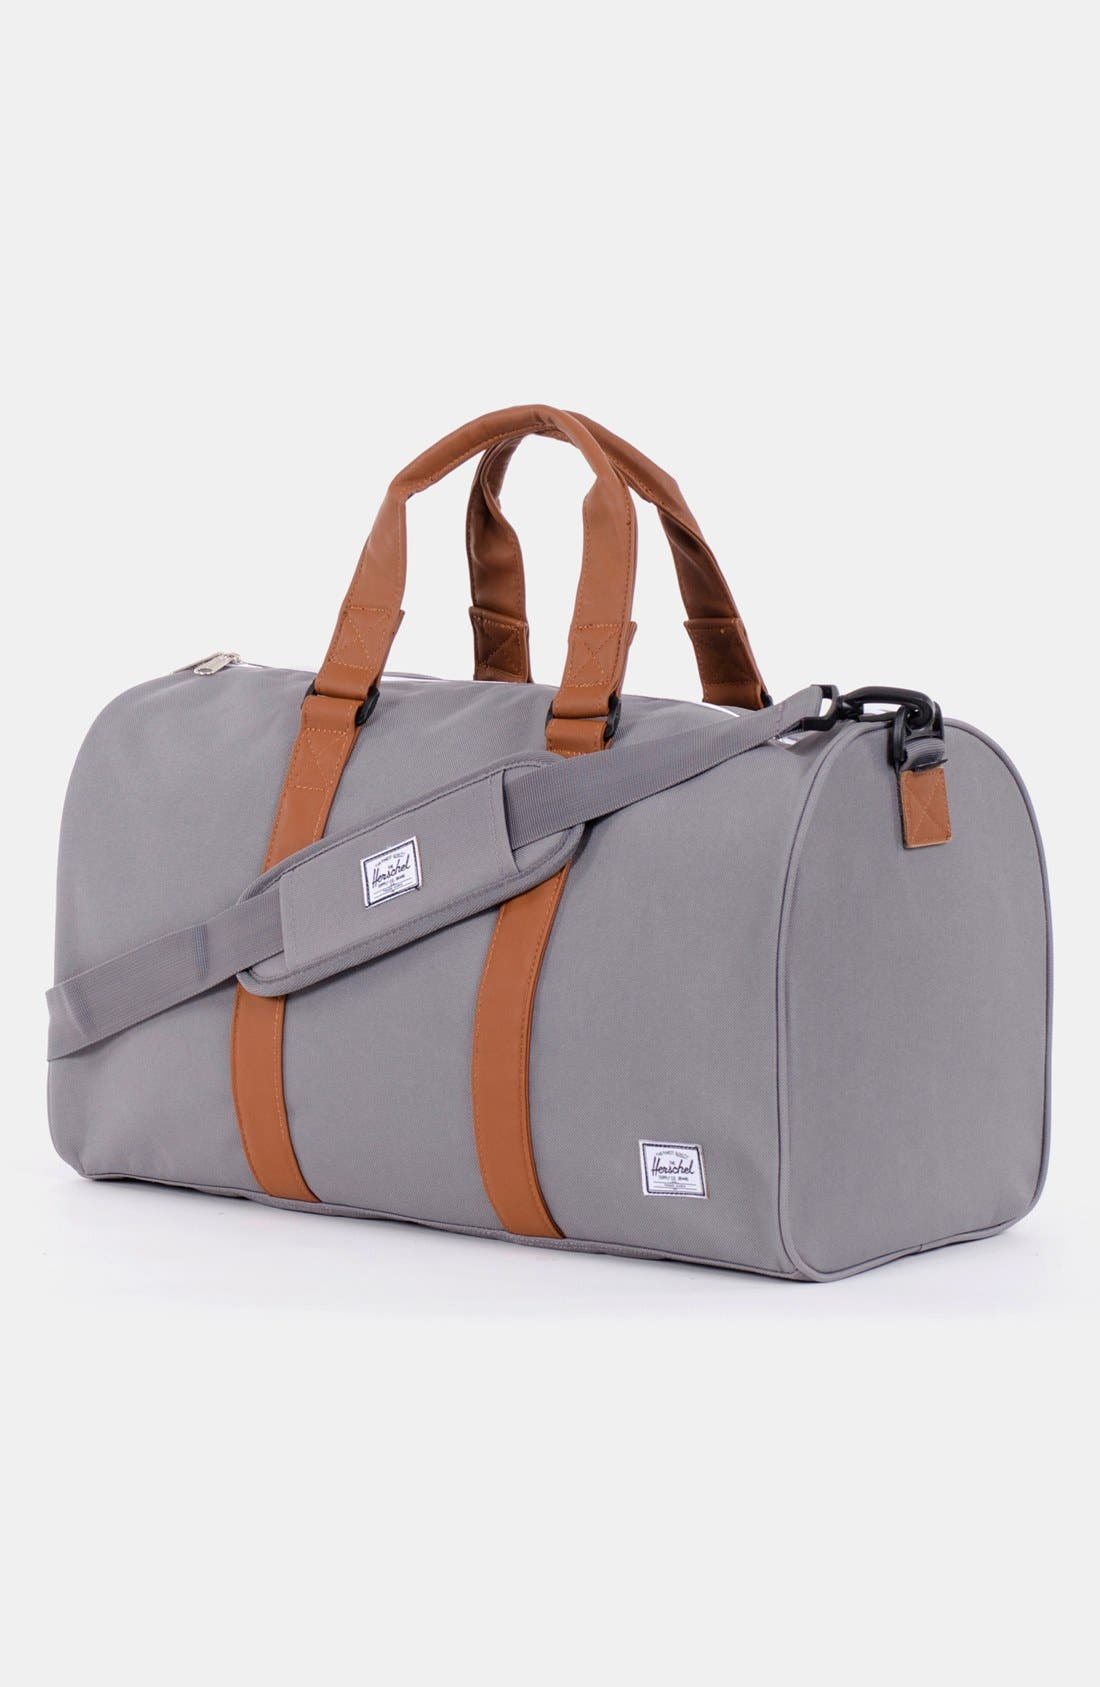 Alternate Image 1 Selected - Herschel Supply Co. 'Ravine' Gym Bag